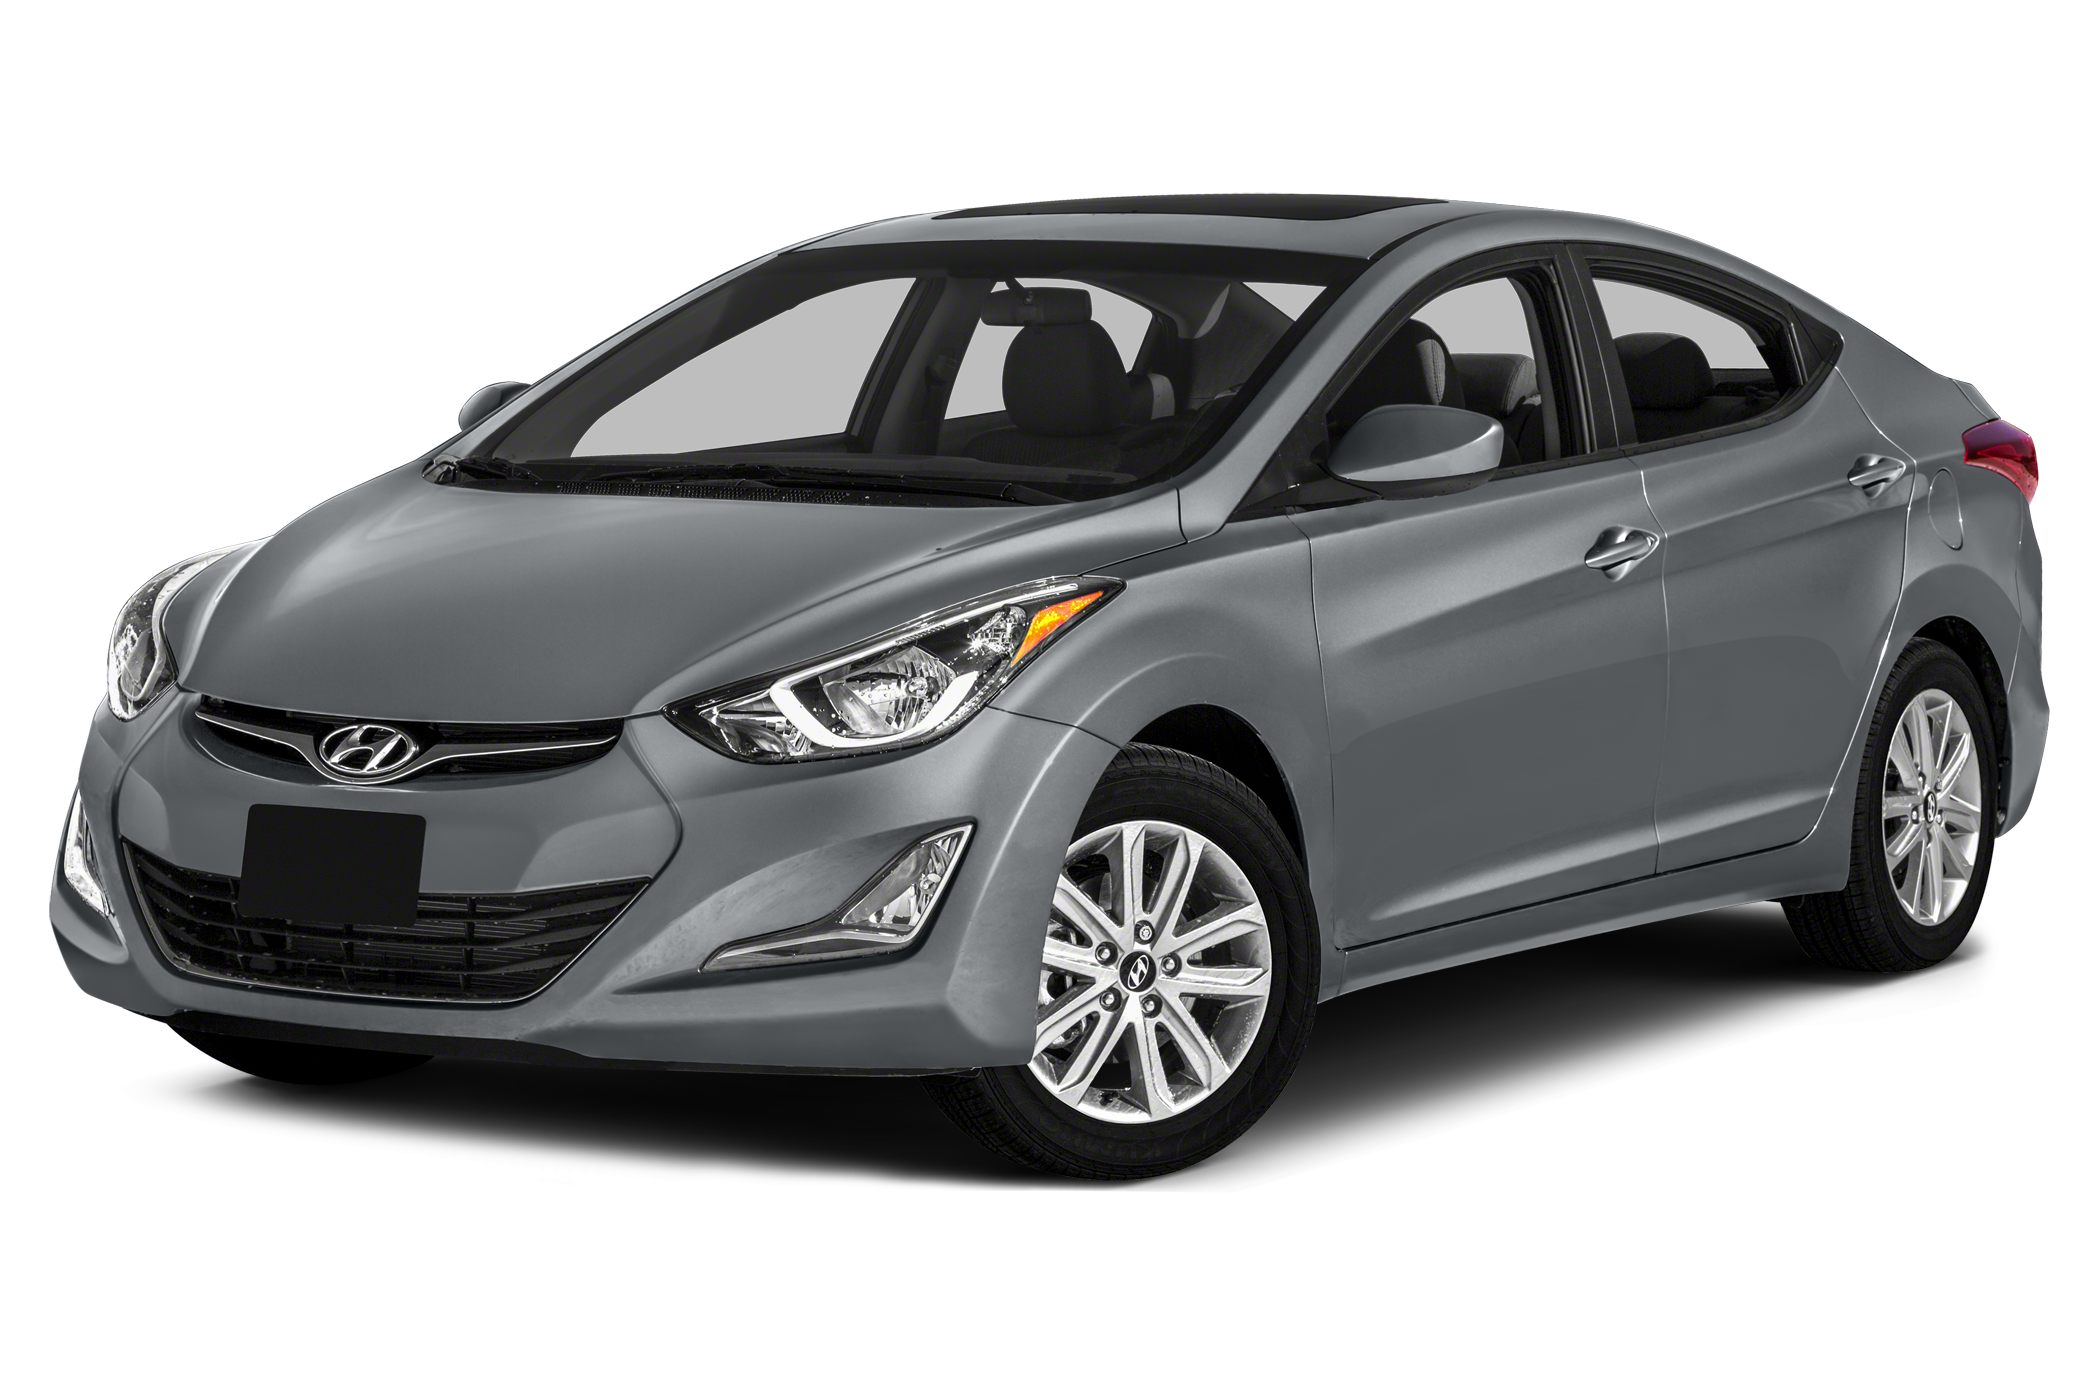 2015 Hyundai Elantra SE Sedan for sale in Mentor for $20,285 with 0 miles.